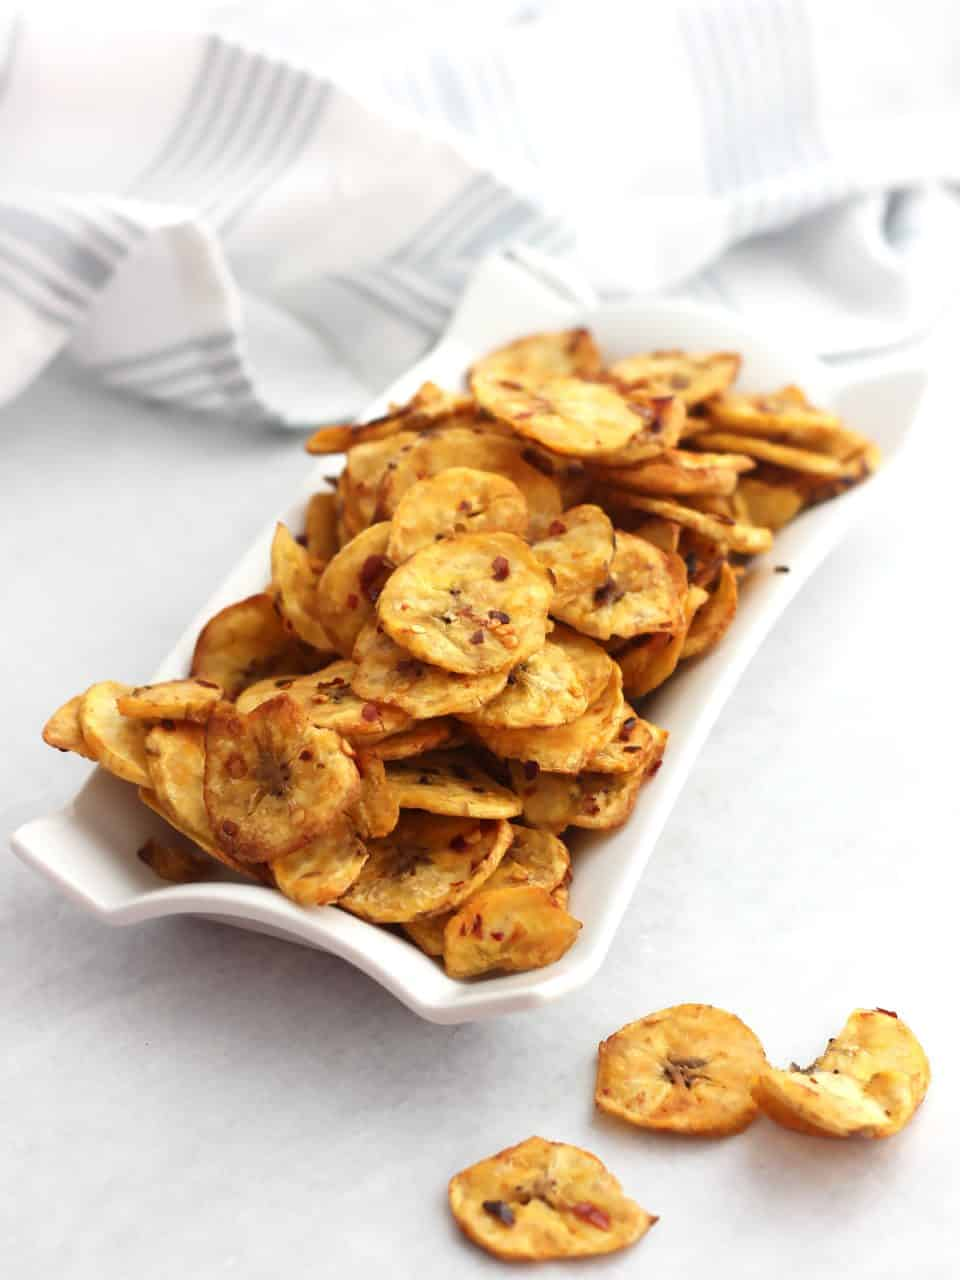 Air fryer plantain chips on a white serving dish next to a blue and white striped cloth.